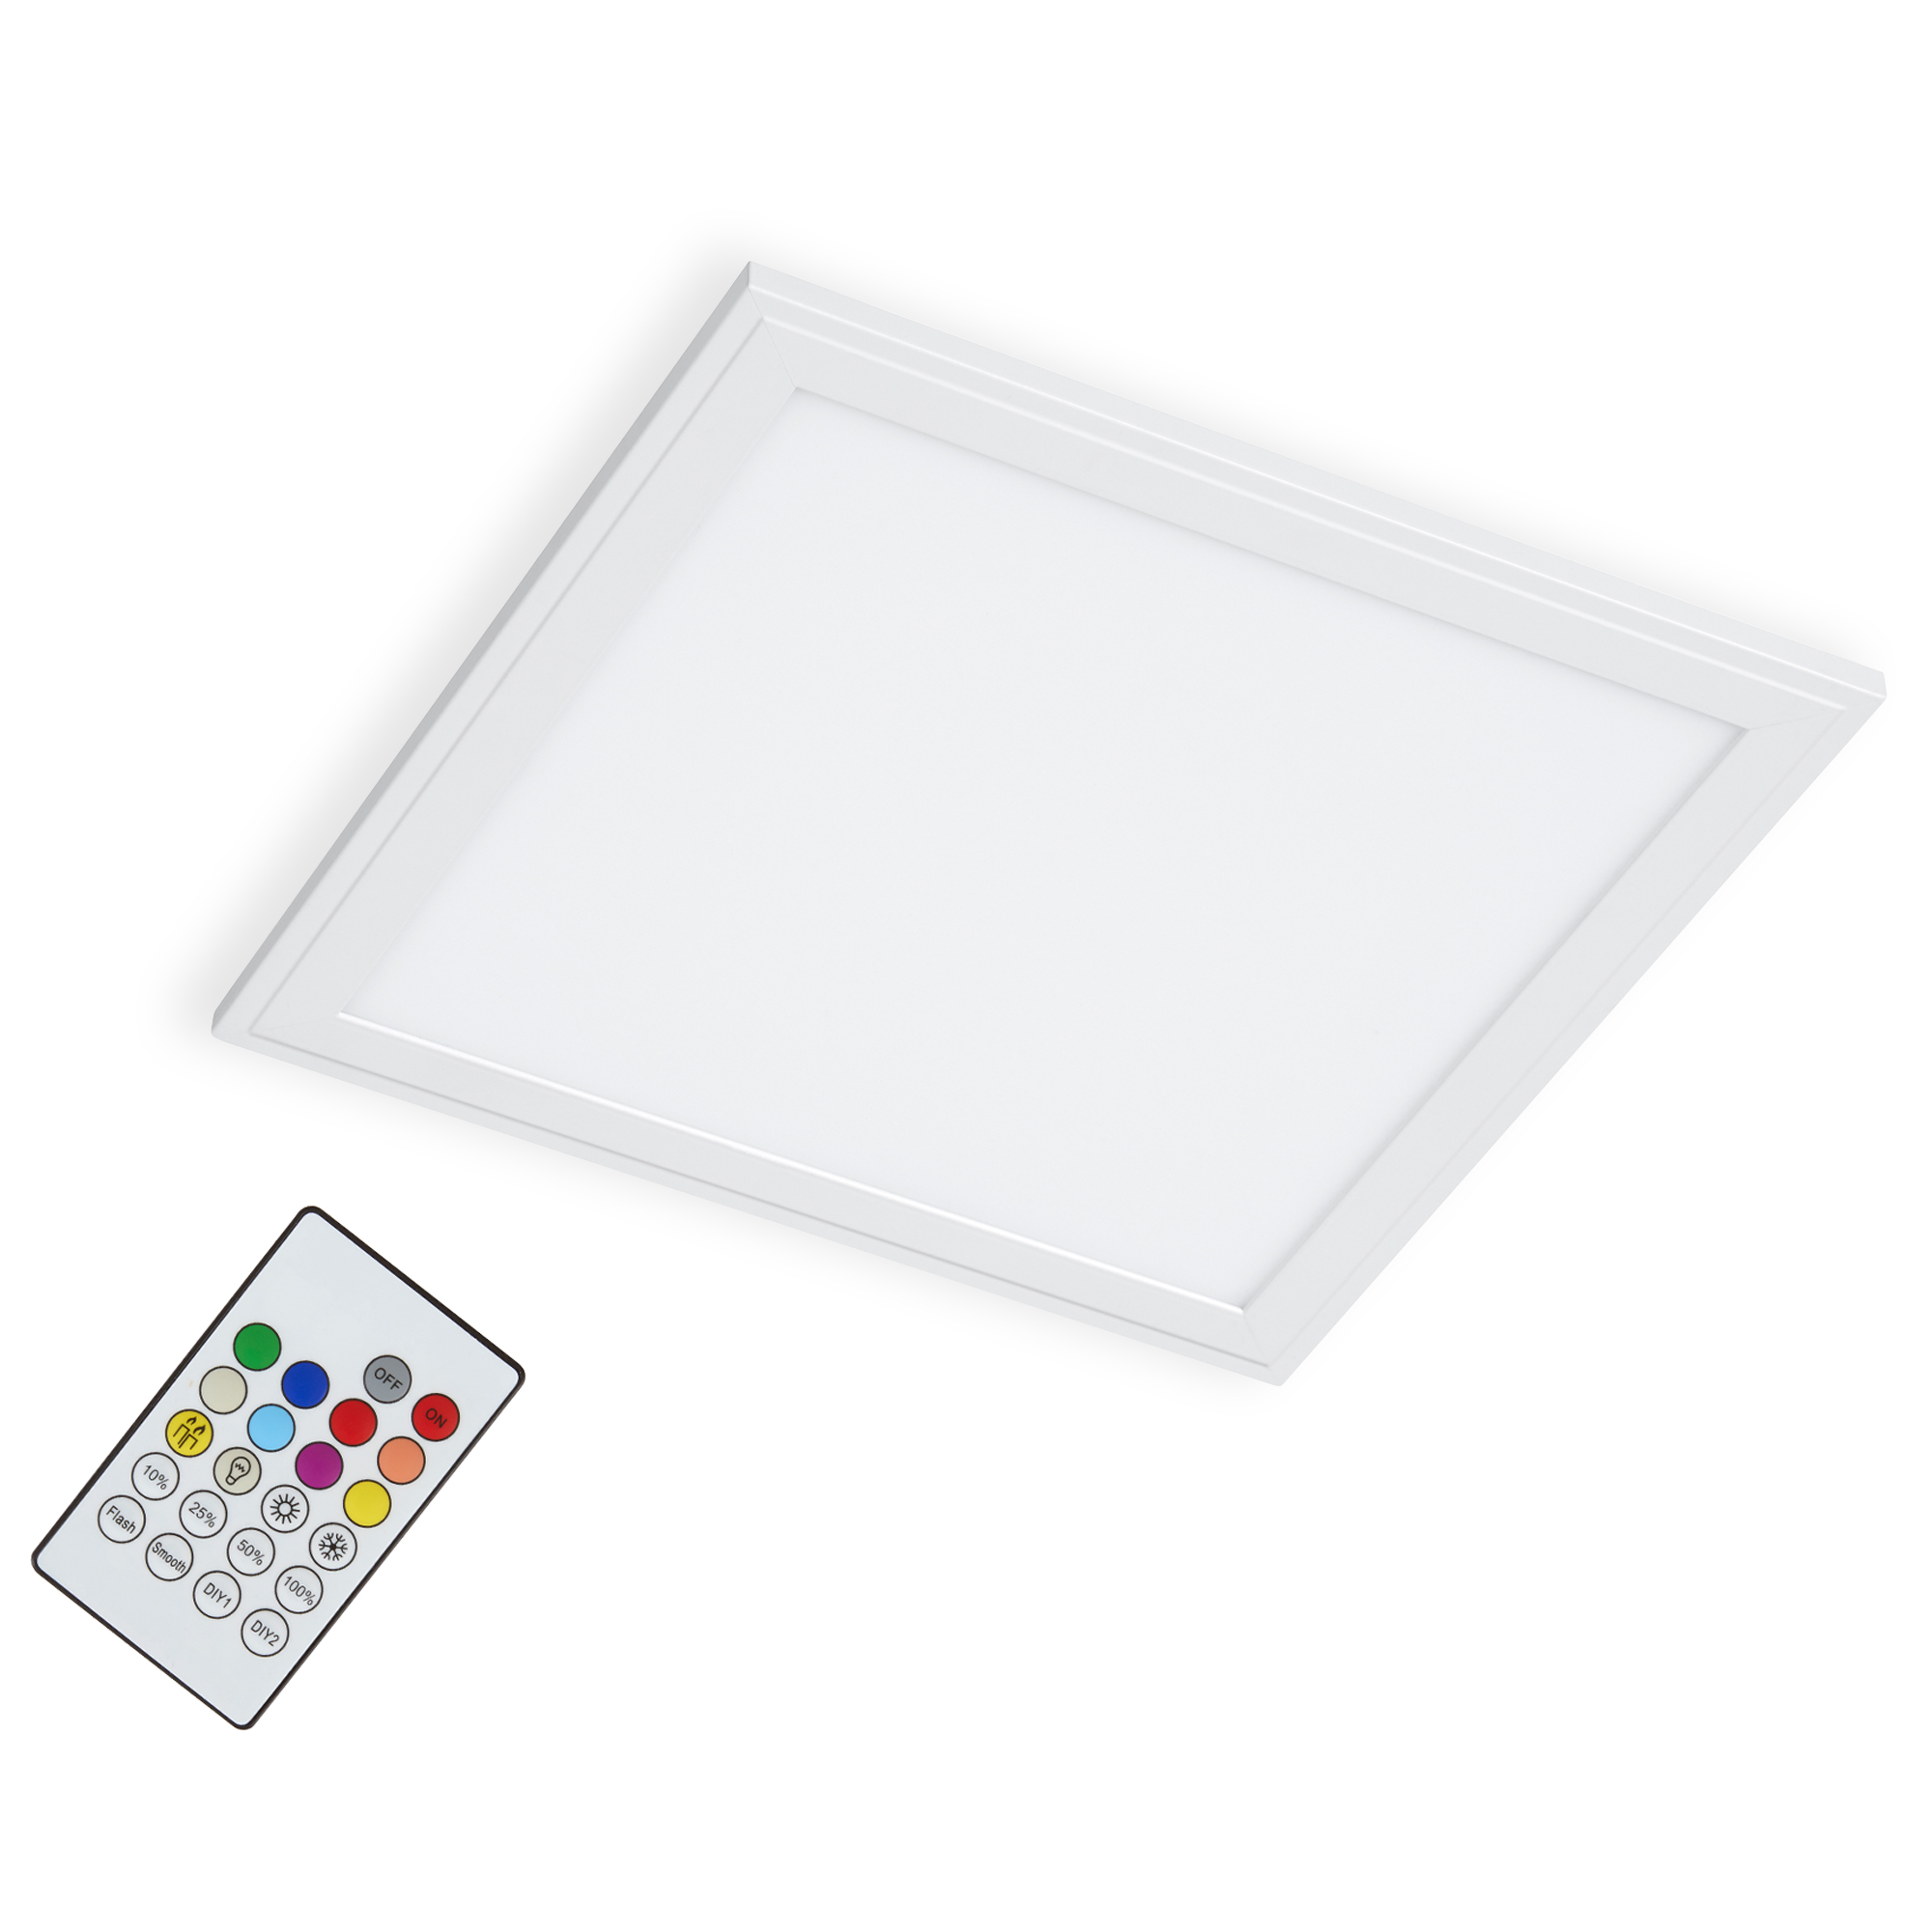 SMART LED Panel, 29,5 cm, 1200 LUMEN, 18 WATT, Weiss